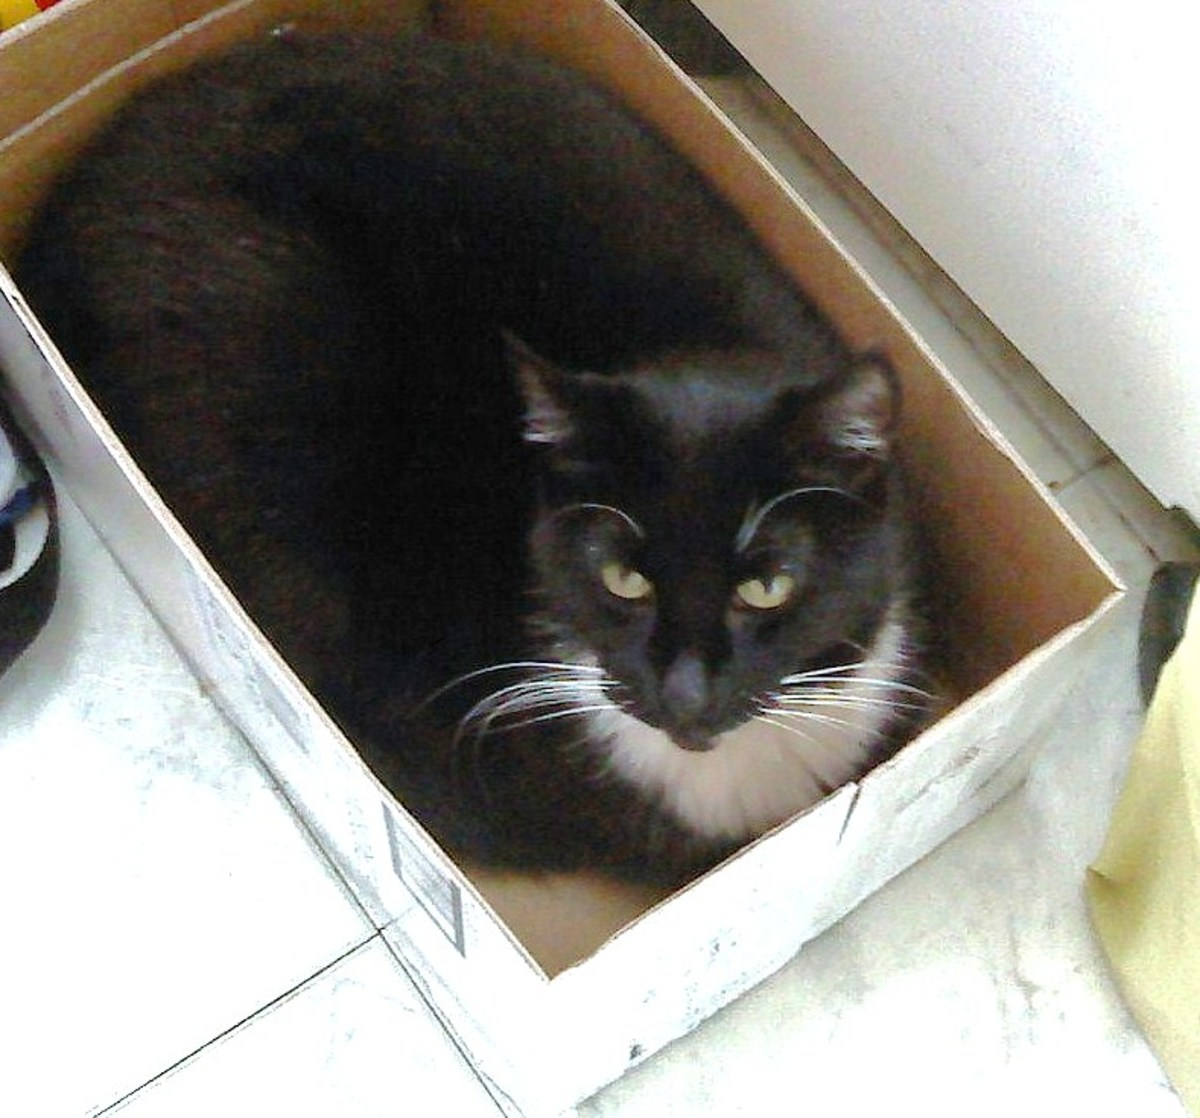 """MEOW..."" As you can see, our kitty Shadow is quite comfortable in boxes of all kinds - not just litter boxes.."